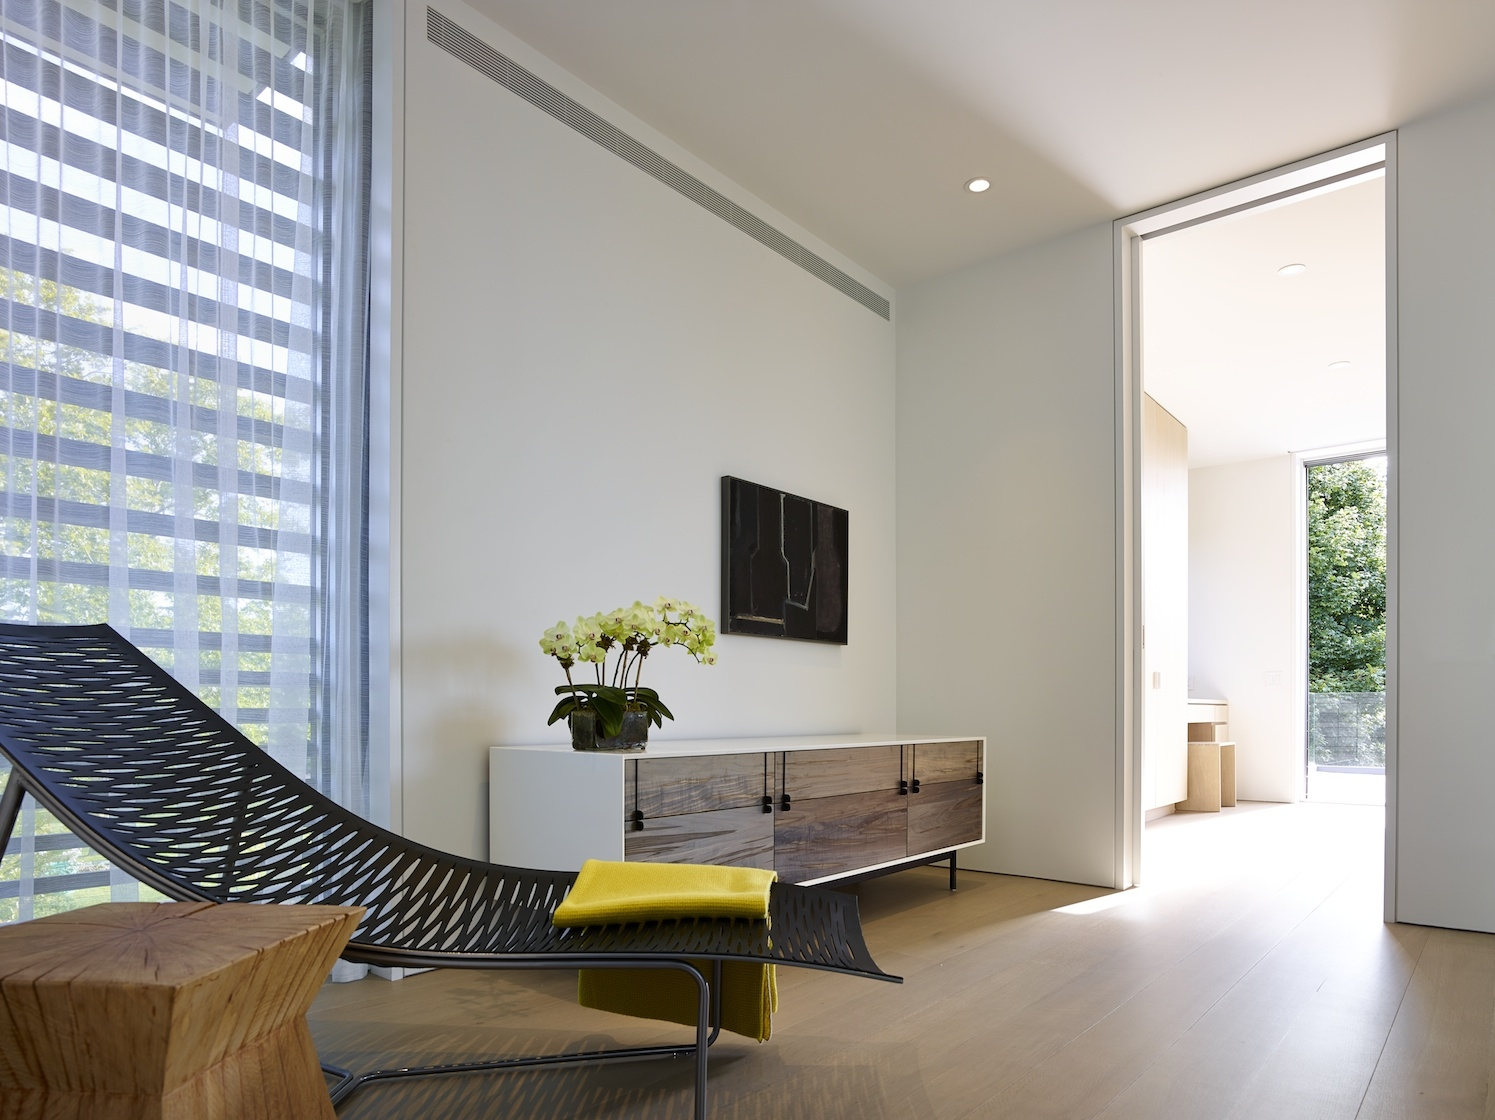 Orchard House Interiors Stelle Lomont Rouhani